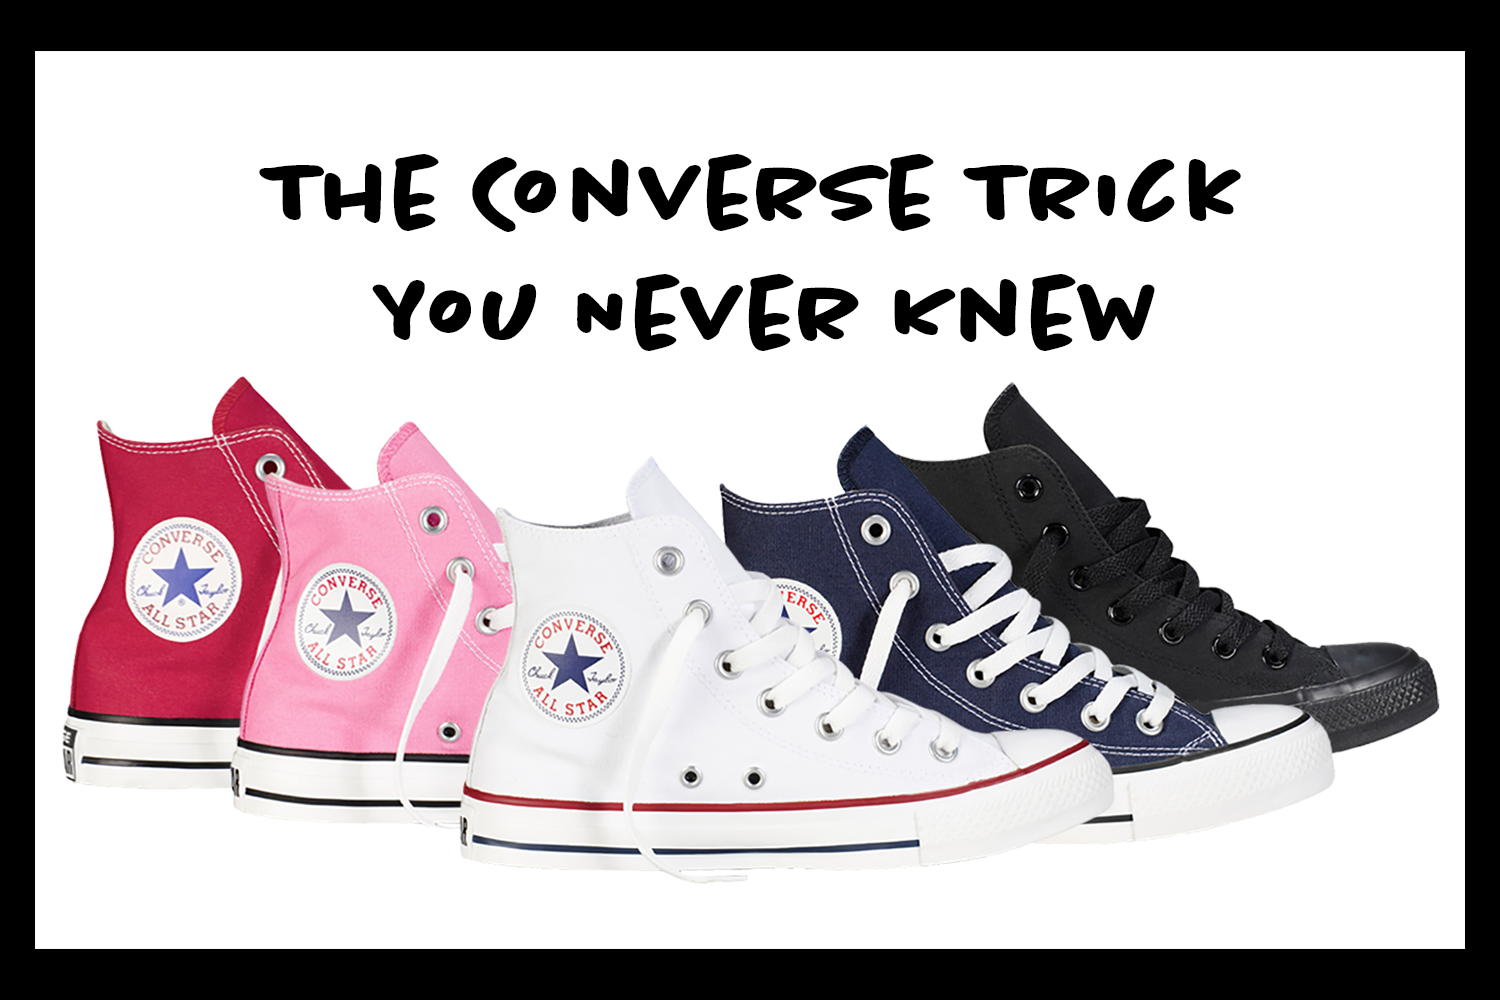 Our beloved Chuck Taylor s have been keeping a huge secret from us  and I  are here to expose them. Have you ever wondered what those two 2fe5654c1